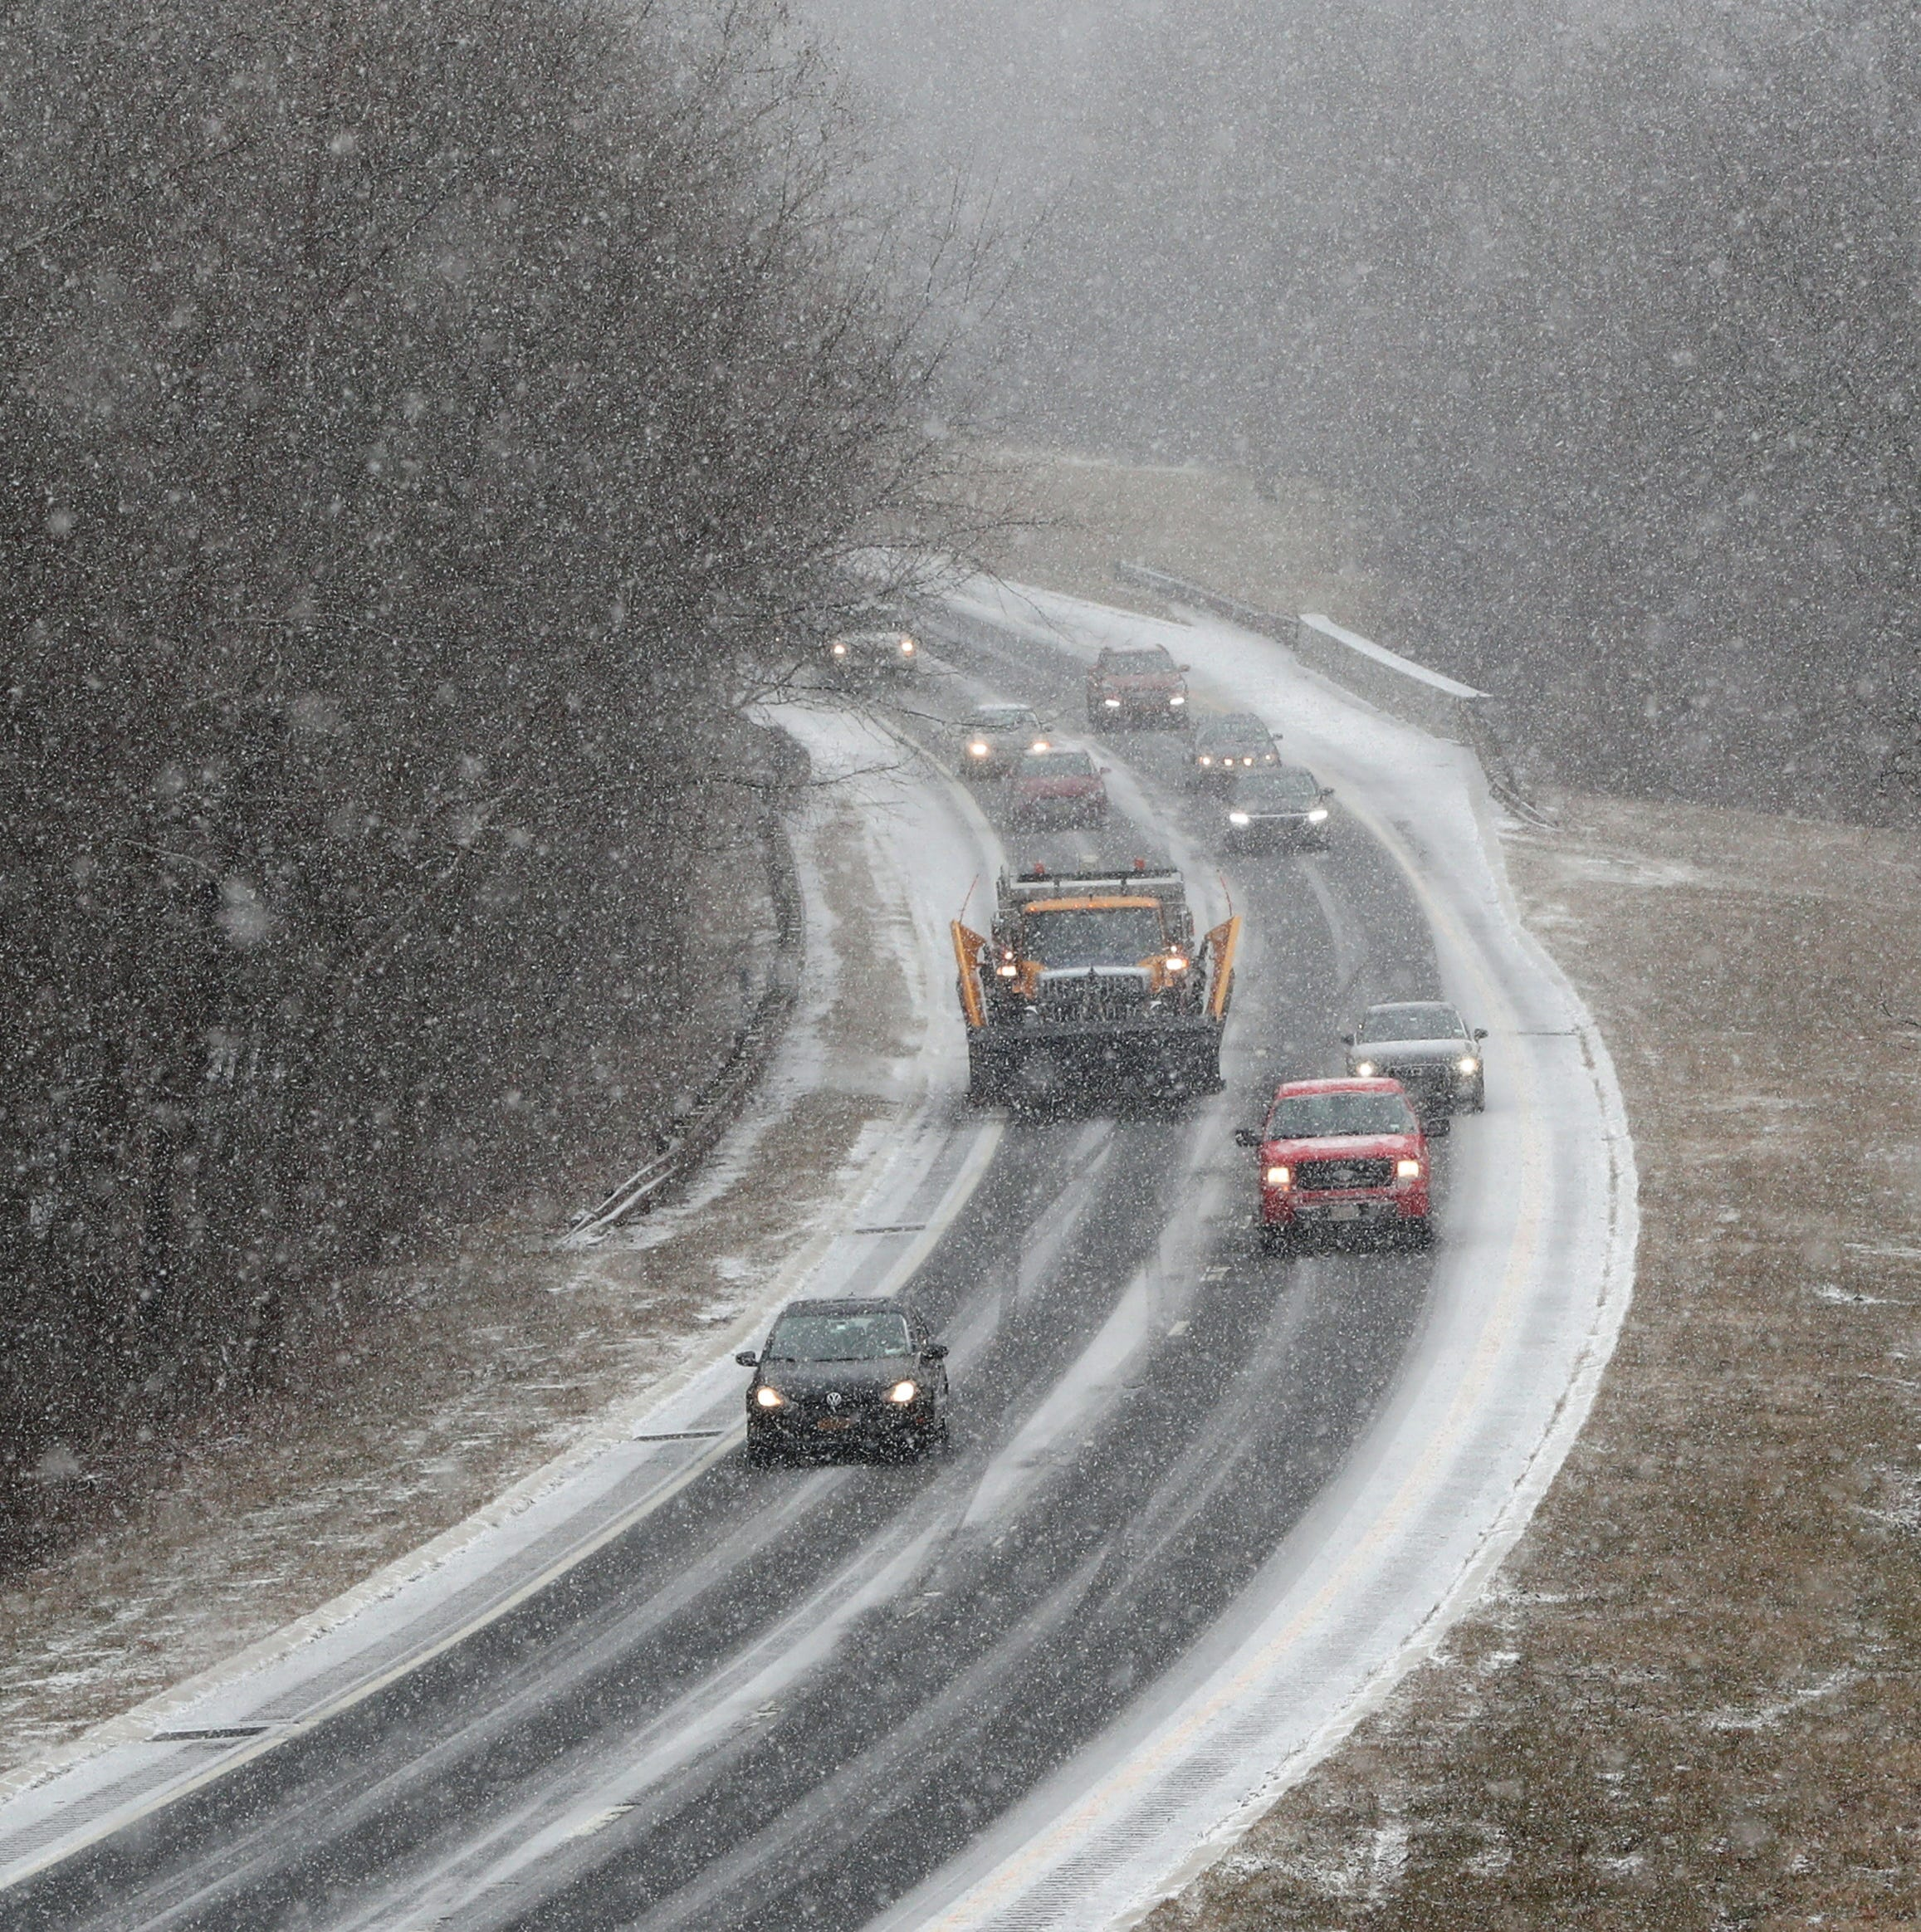 Weather: Snow falling. Could snowstorm recreate November travel nightmare?